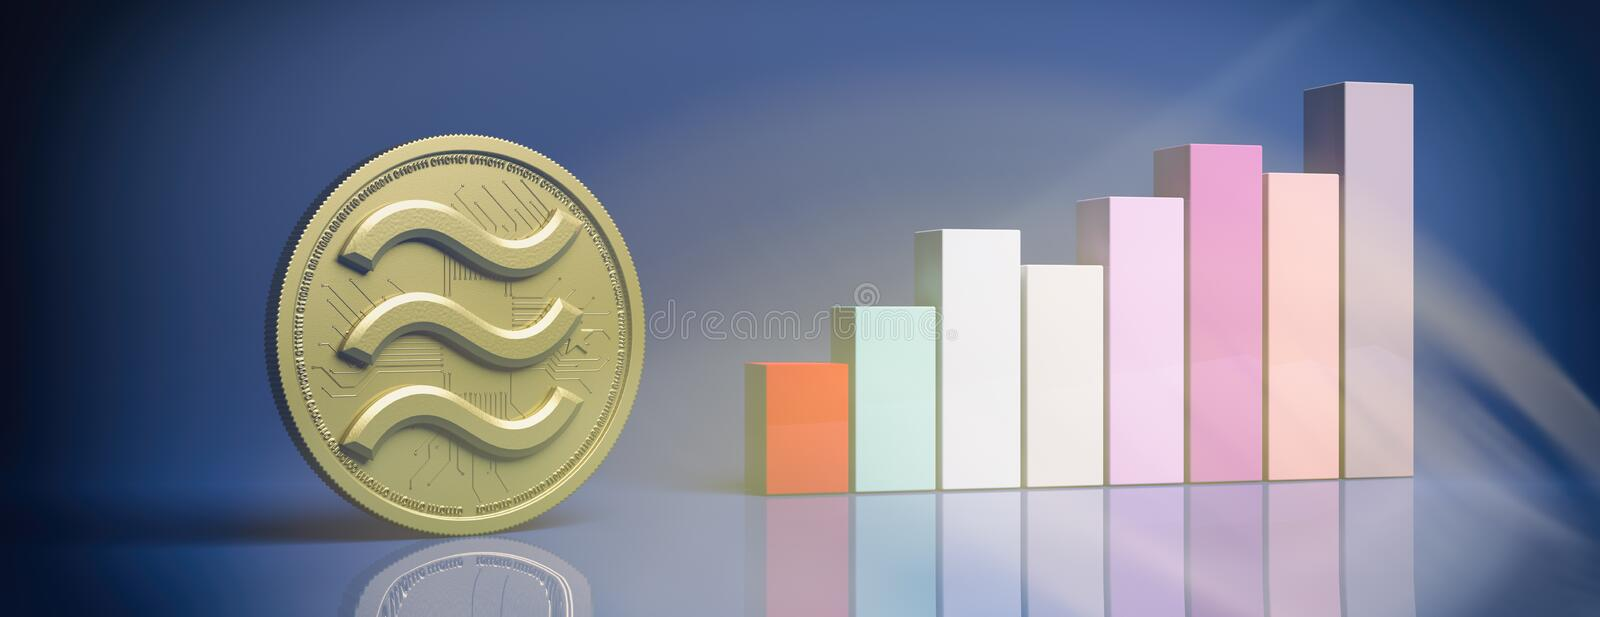 Libra growth. Gold coin and bar chart against blue color background. 3d illustration. Libra digital cryptocurrency growth. Gold coin with logo and growing bars vector illustration